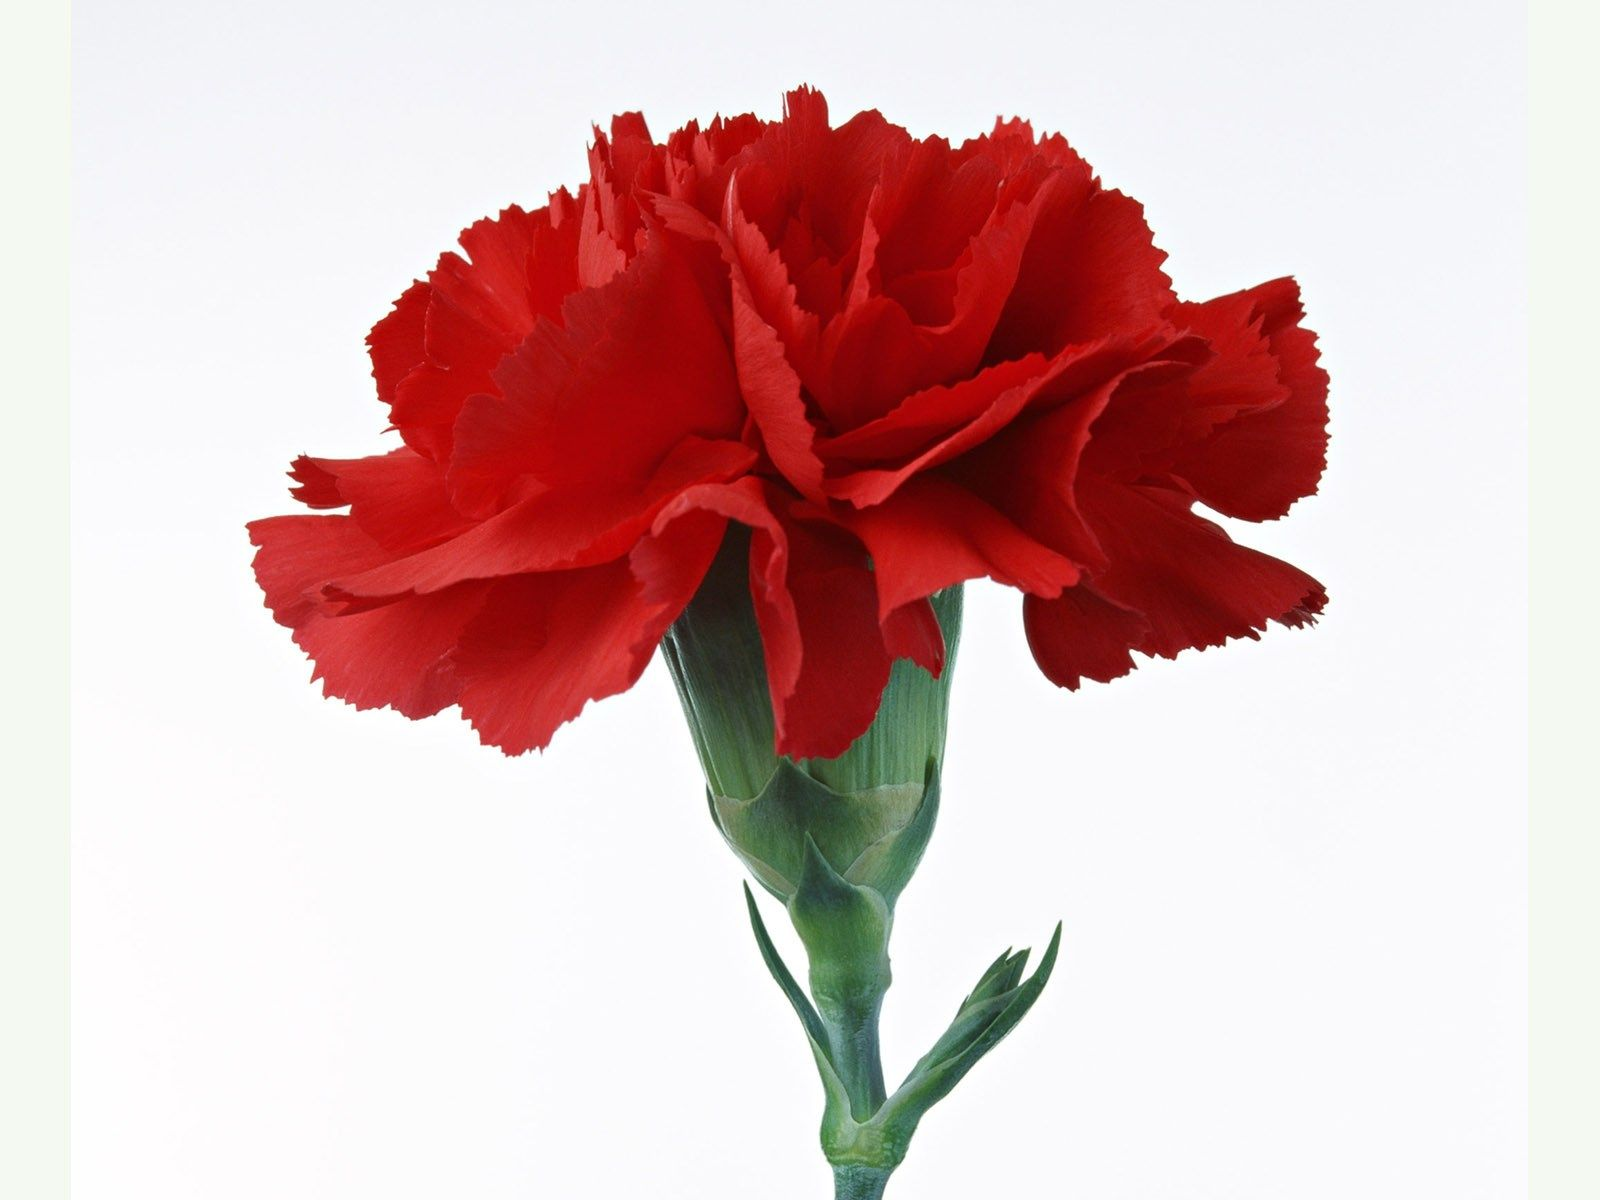 The Red Carnation Is Also The Symbol Of The Portuguese Carnation Revolution Description From What Is This Net In 2020 Red Carnation Orange Wedding Flowers Carnations